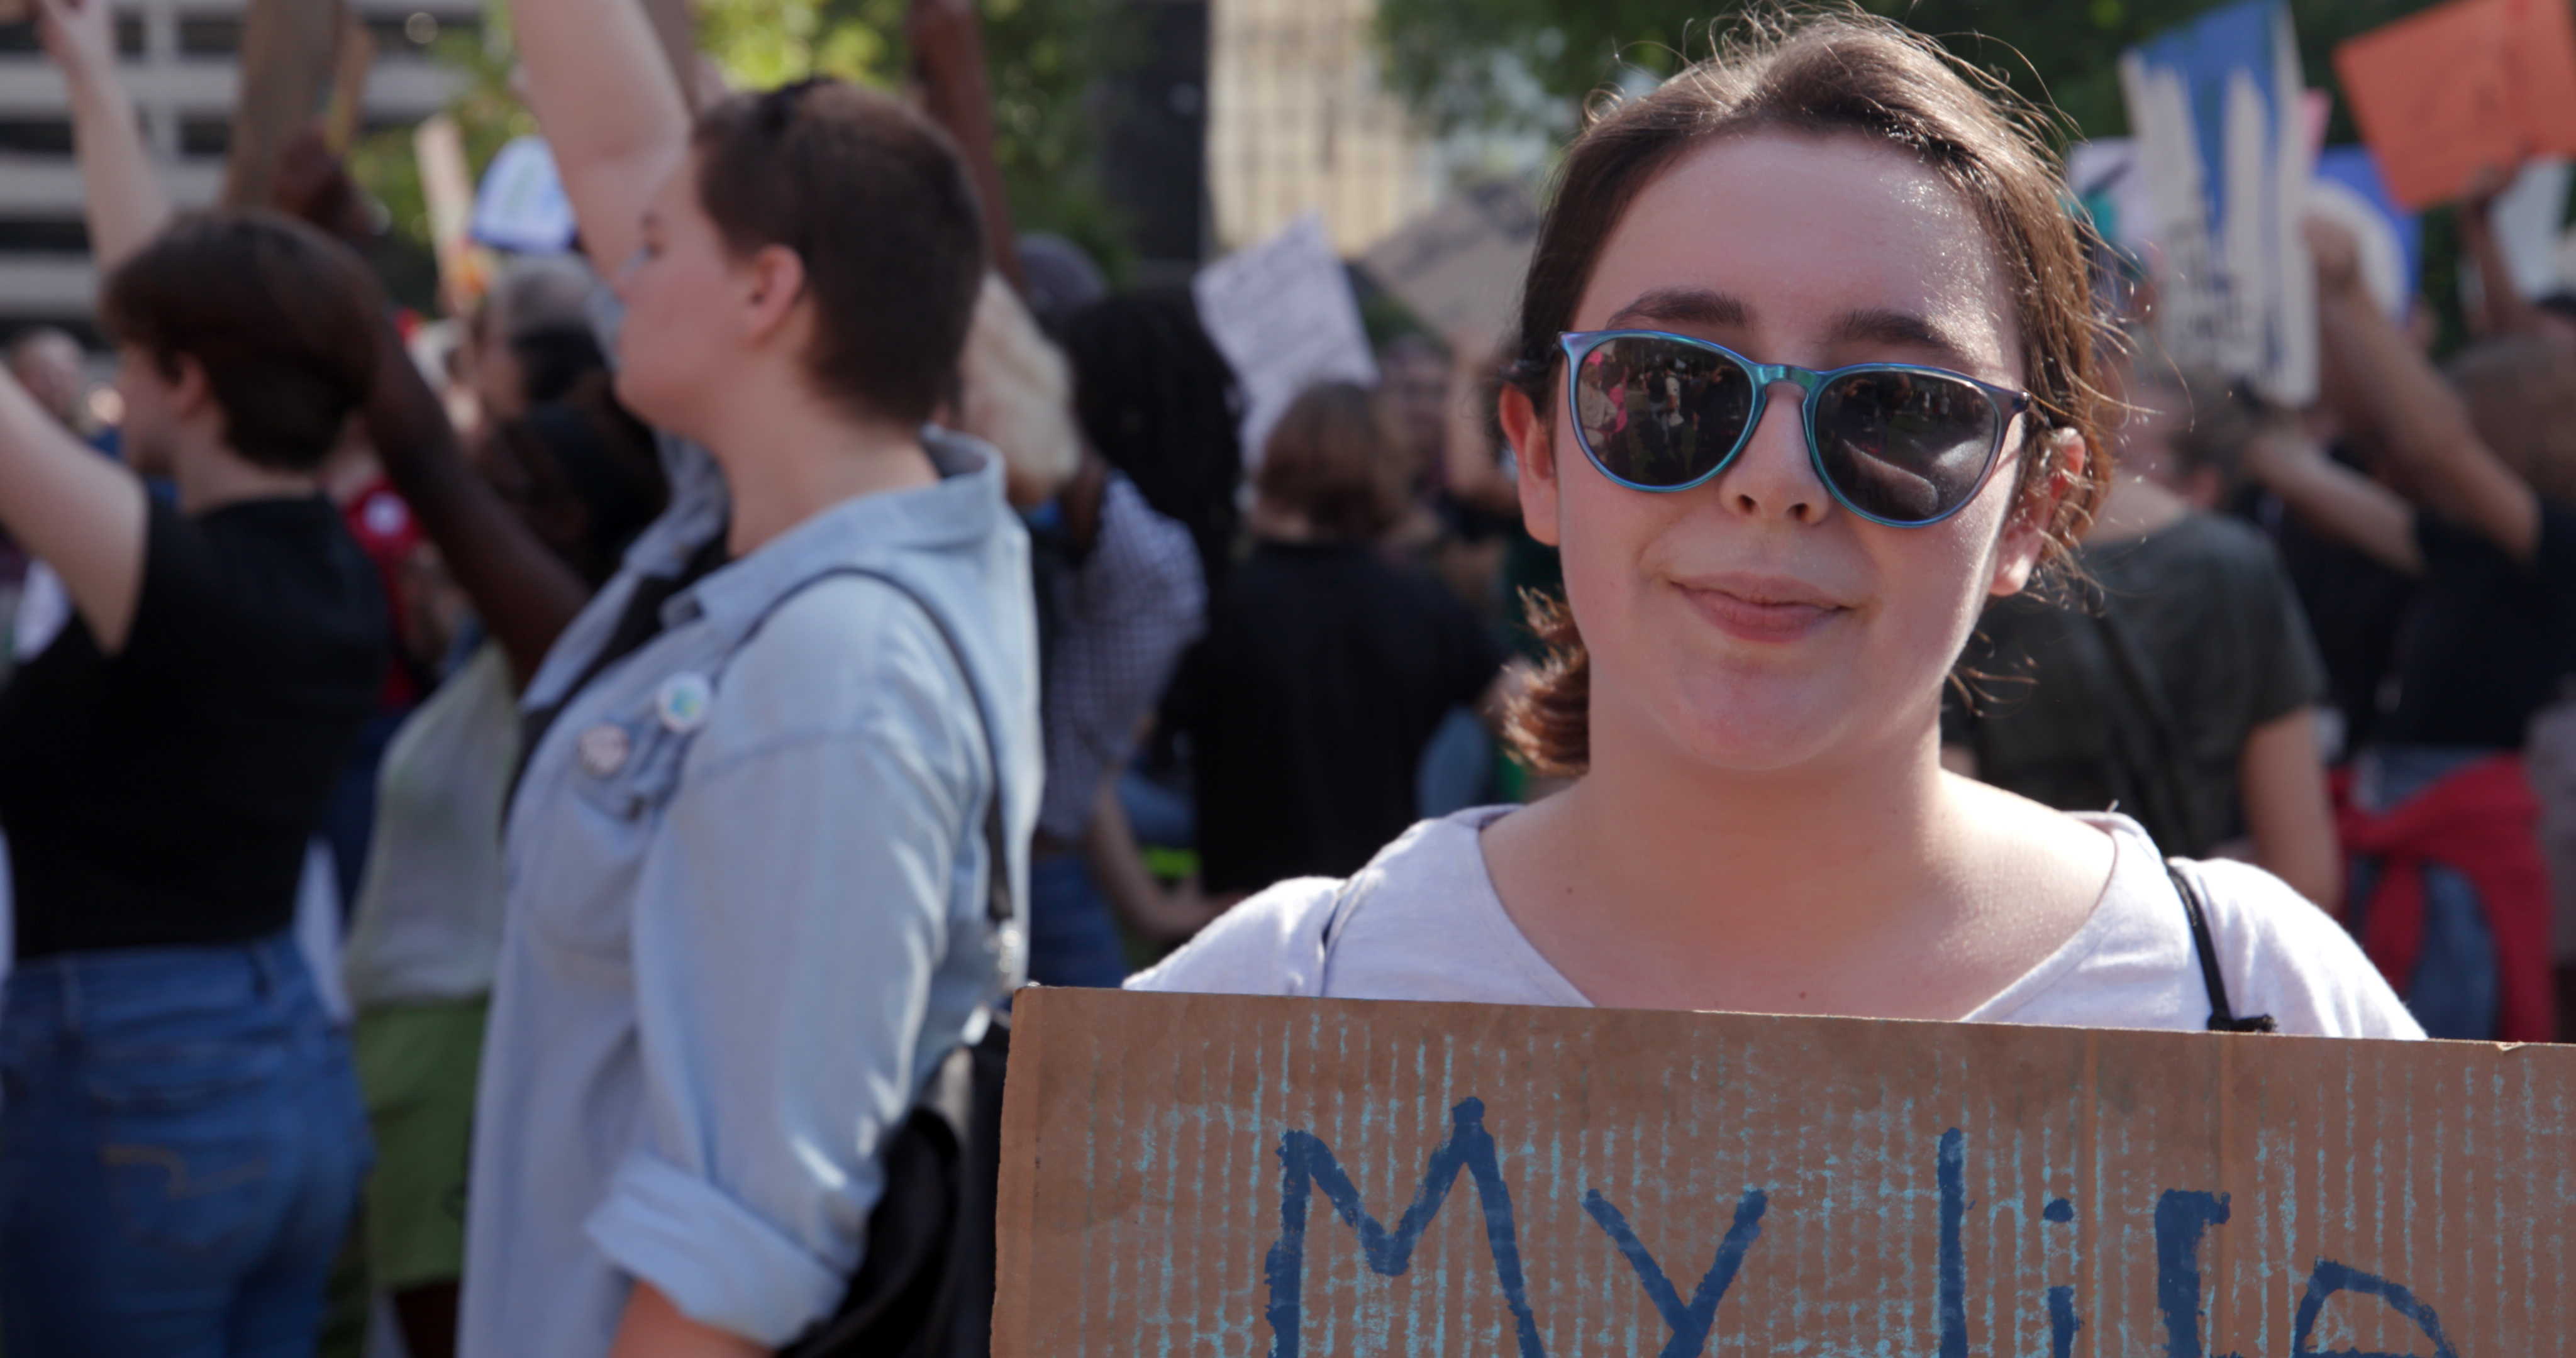 This is a photo of 19-year old Miranda Frausto, a student attending the climate strike event in Indianapolis, September 20.